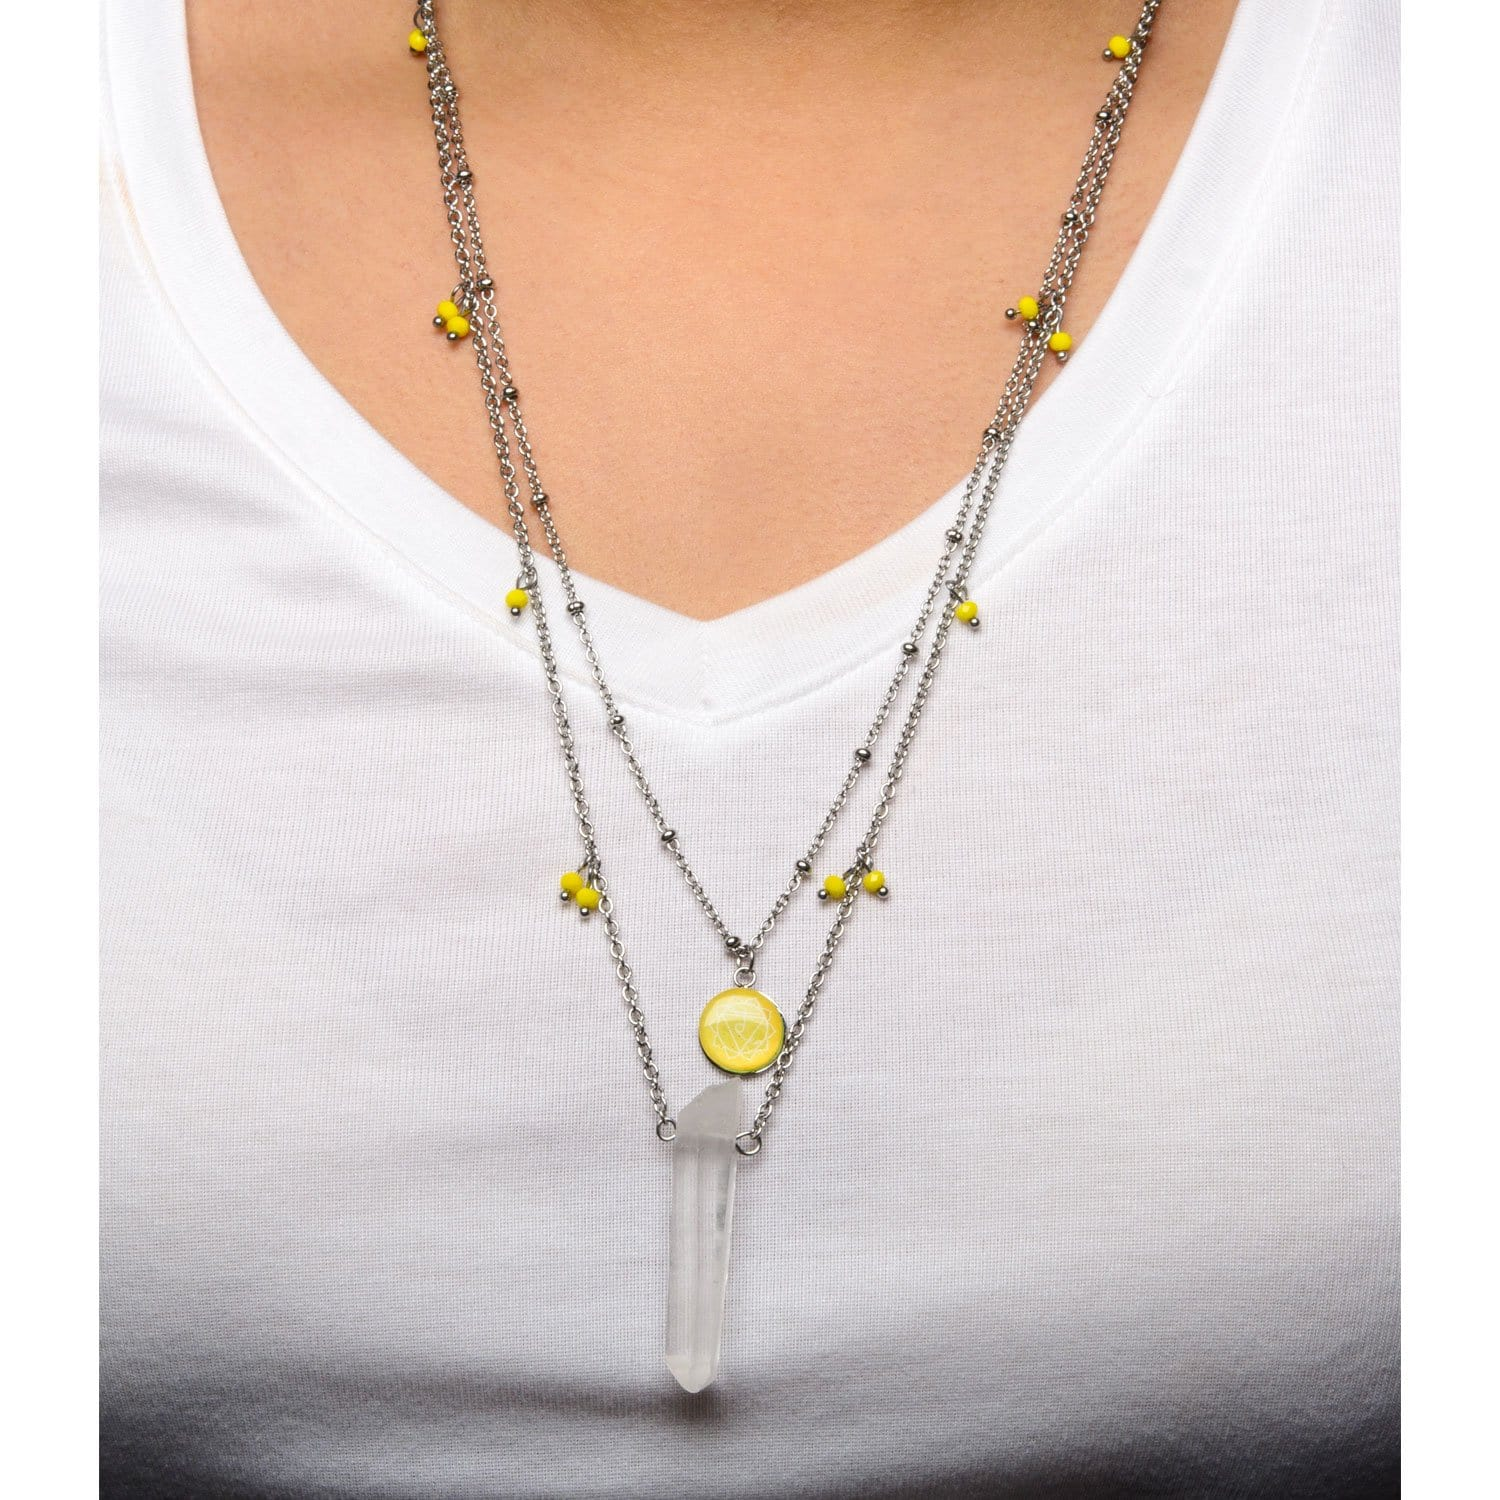 Silver Stainless Steel Yellow Quartz Solar Plexus Chakra Necklace